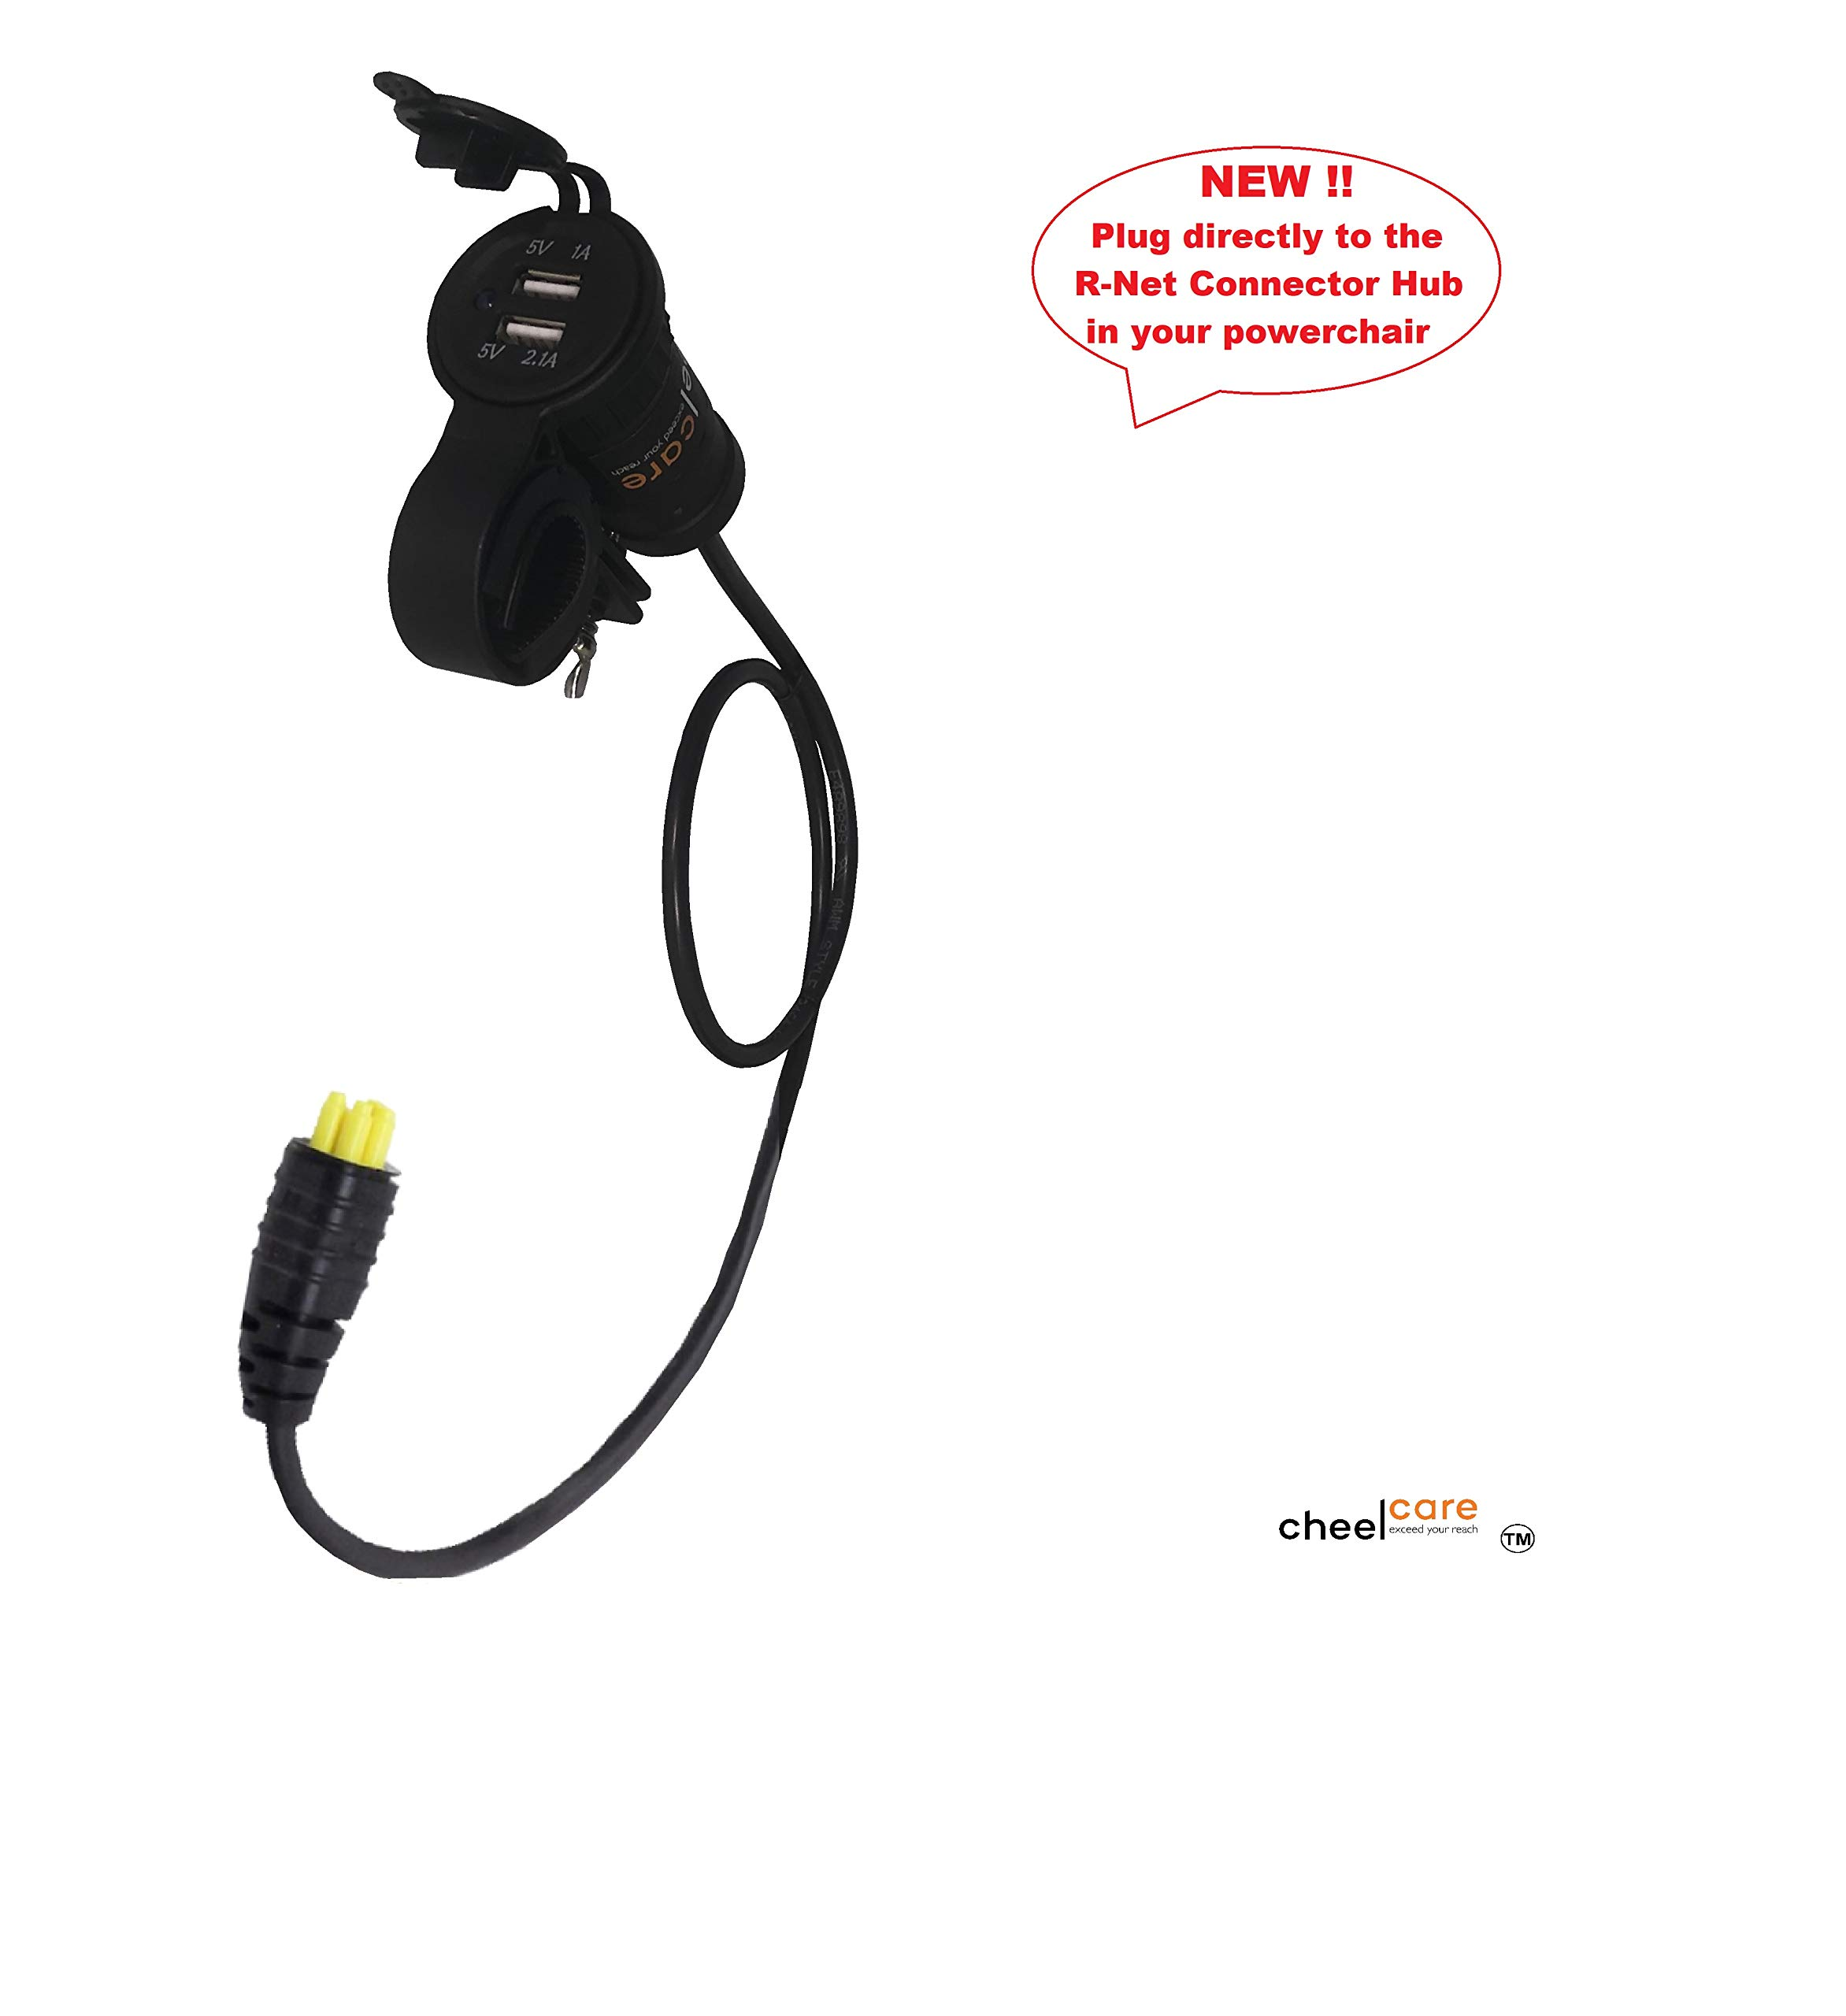 R-NET USB Adaptor for Power Wheelchair by Cheelcare